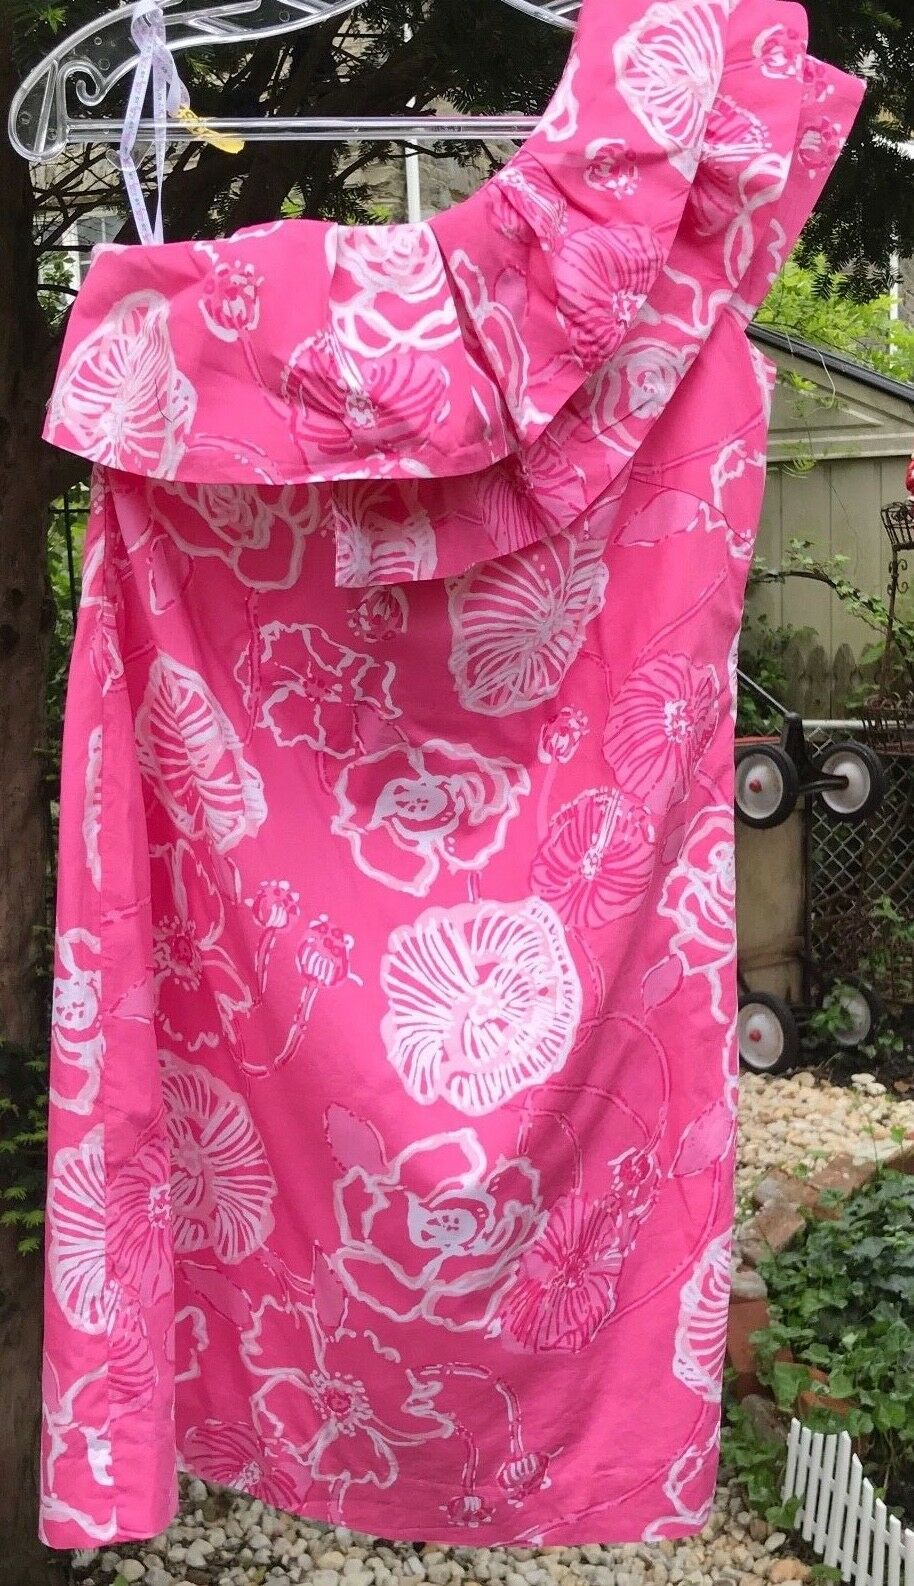 9e232be396dfde Lilly Pulitzer Dress Pink White Floral Print One Sleeve Lined Cotton 2